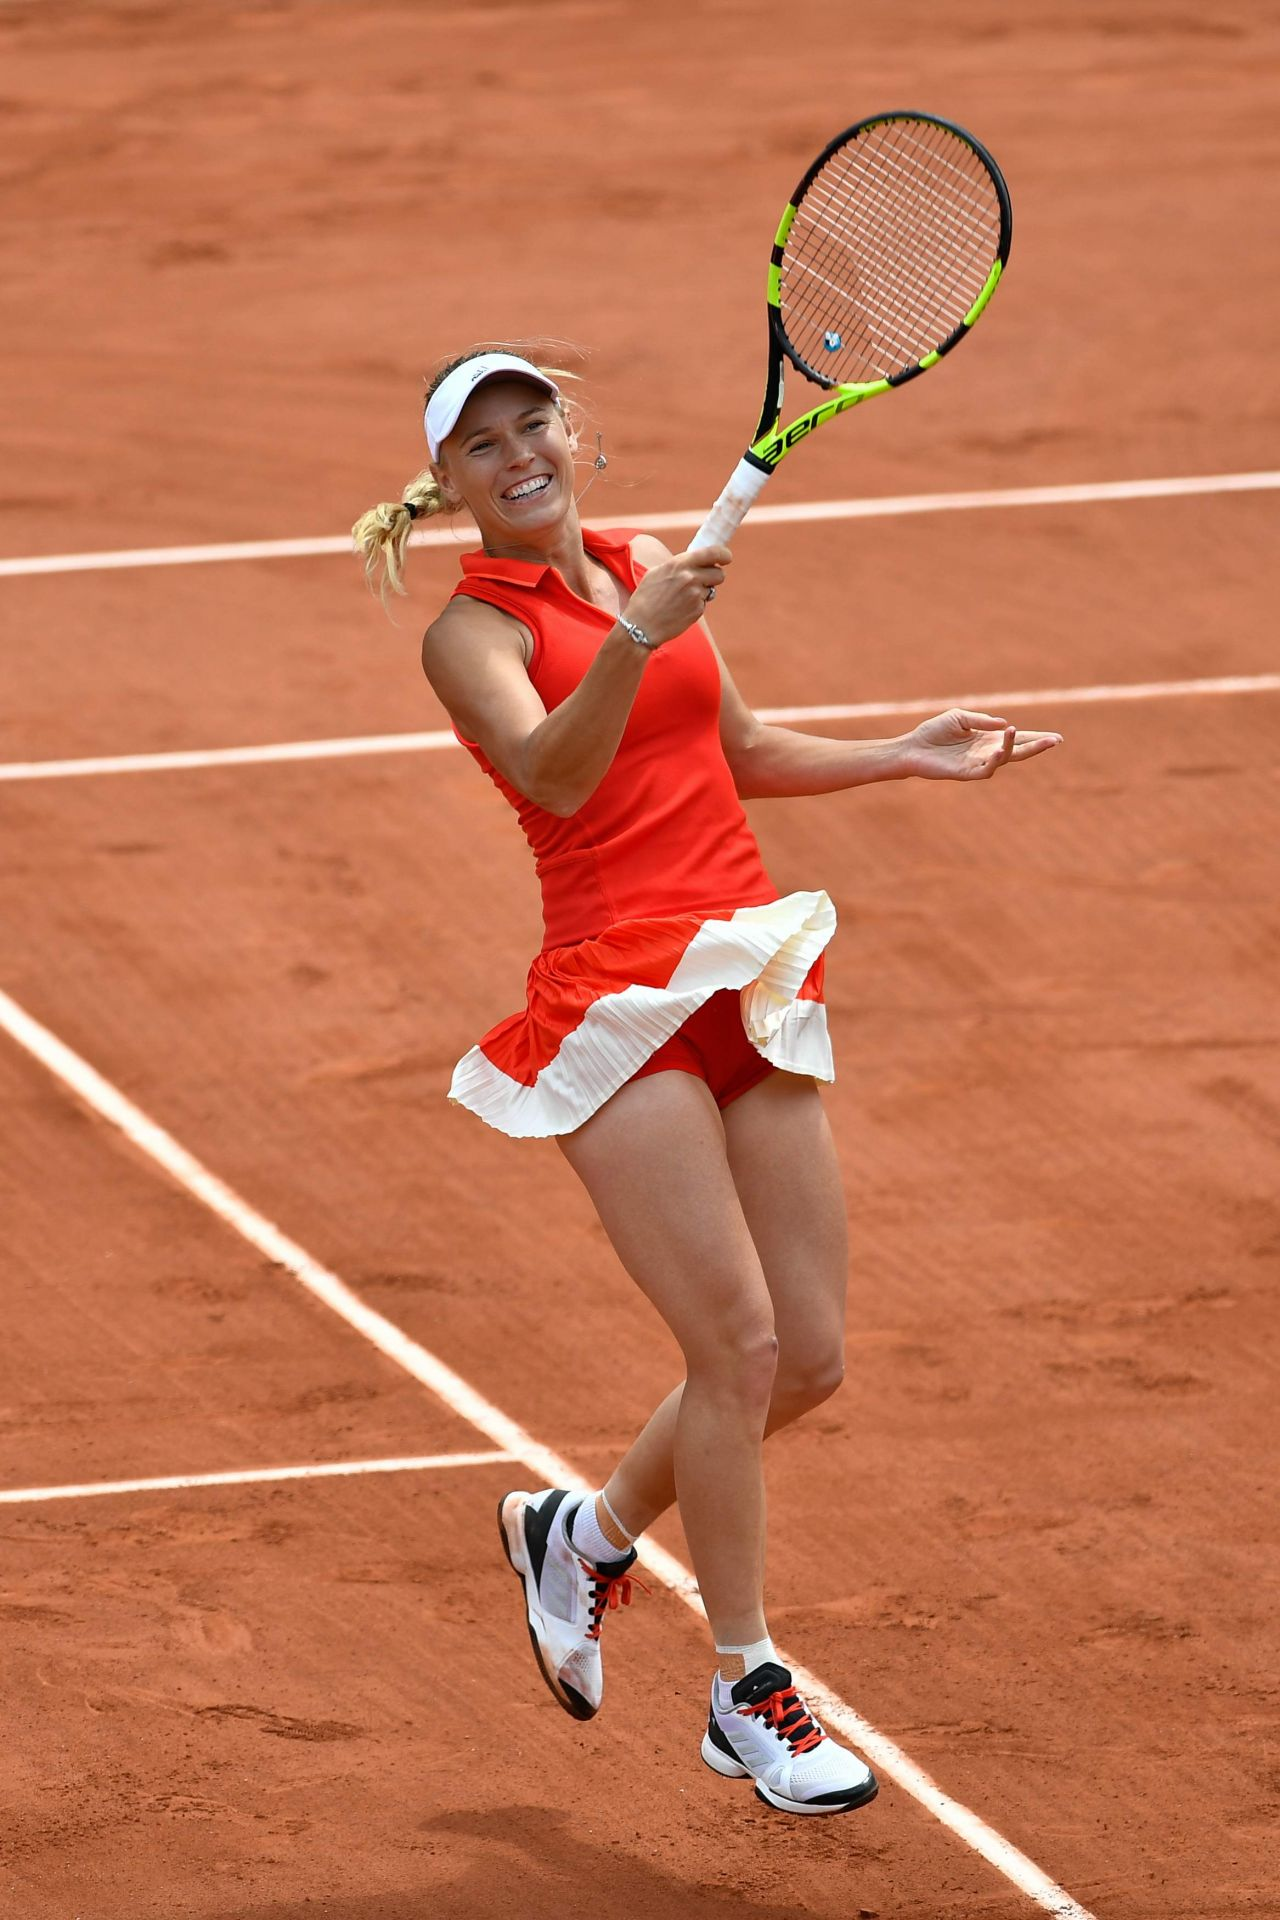 french open - photo #16